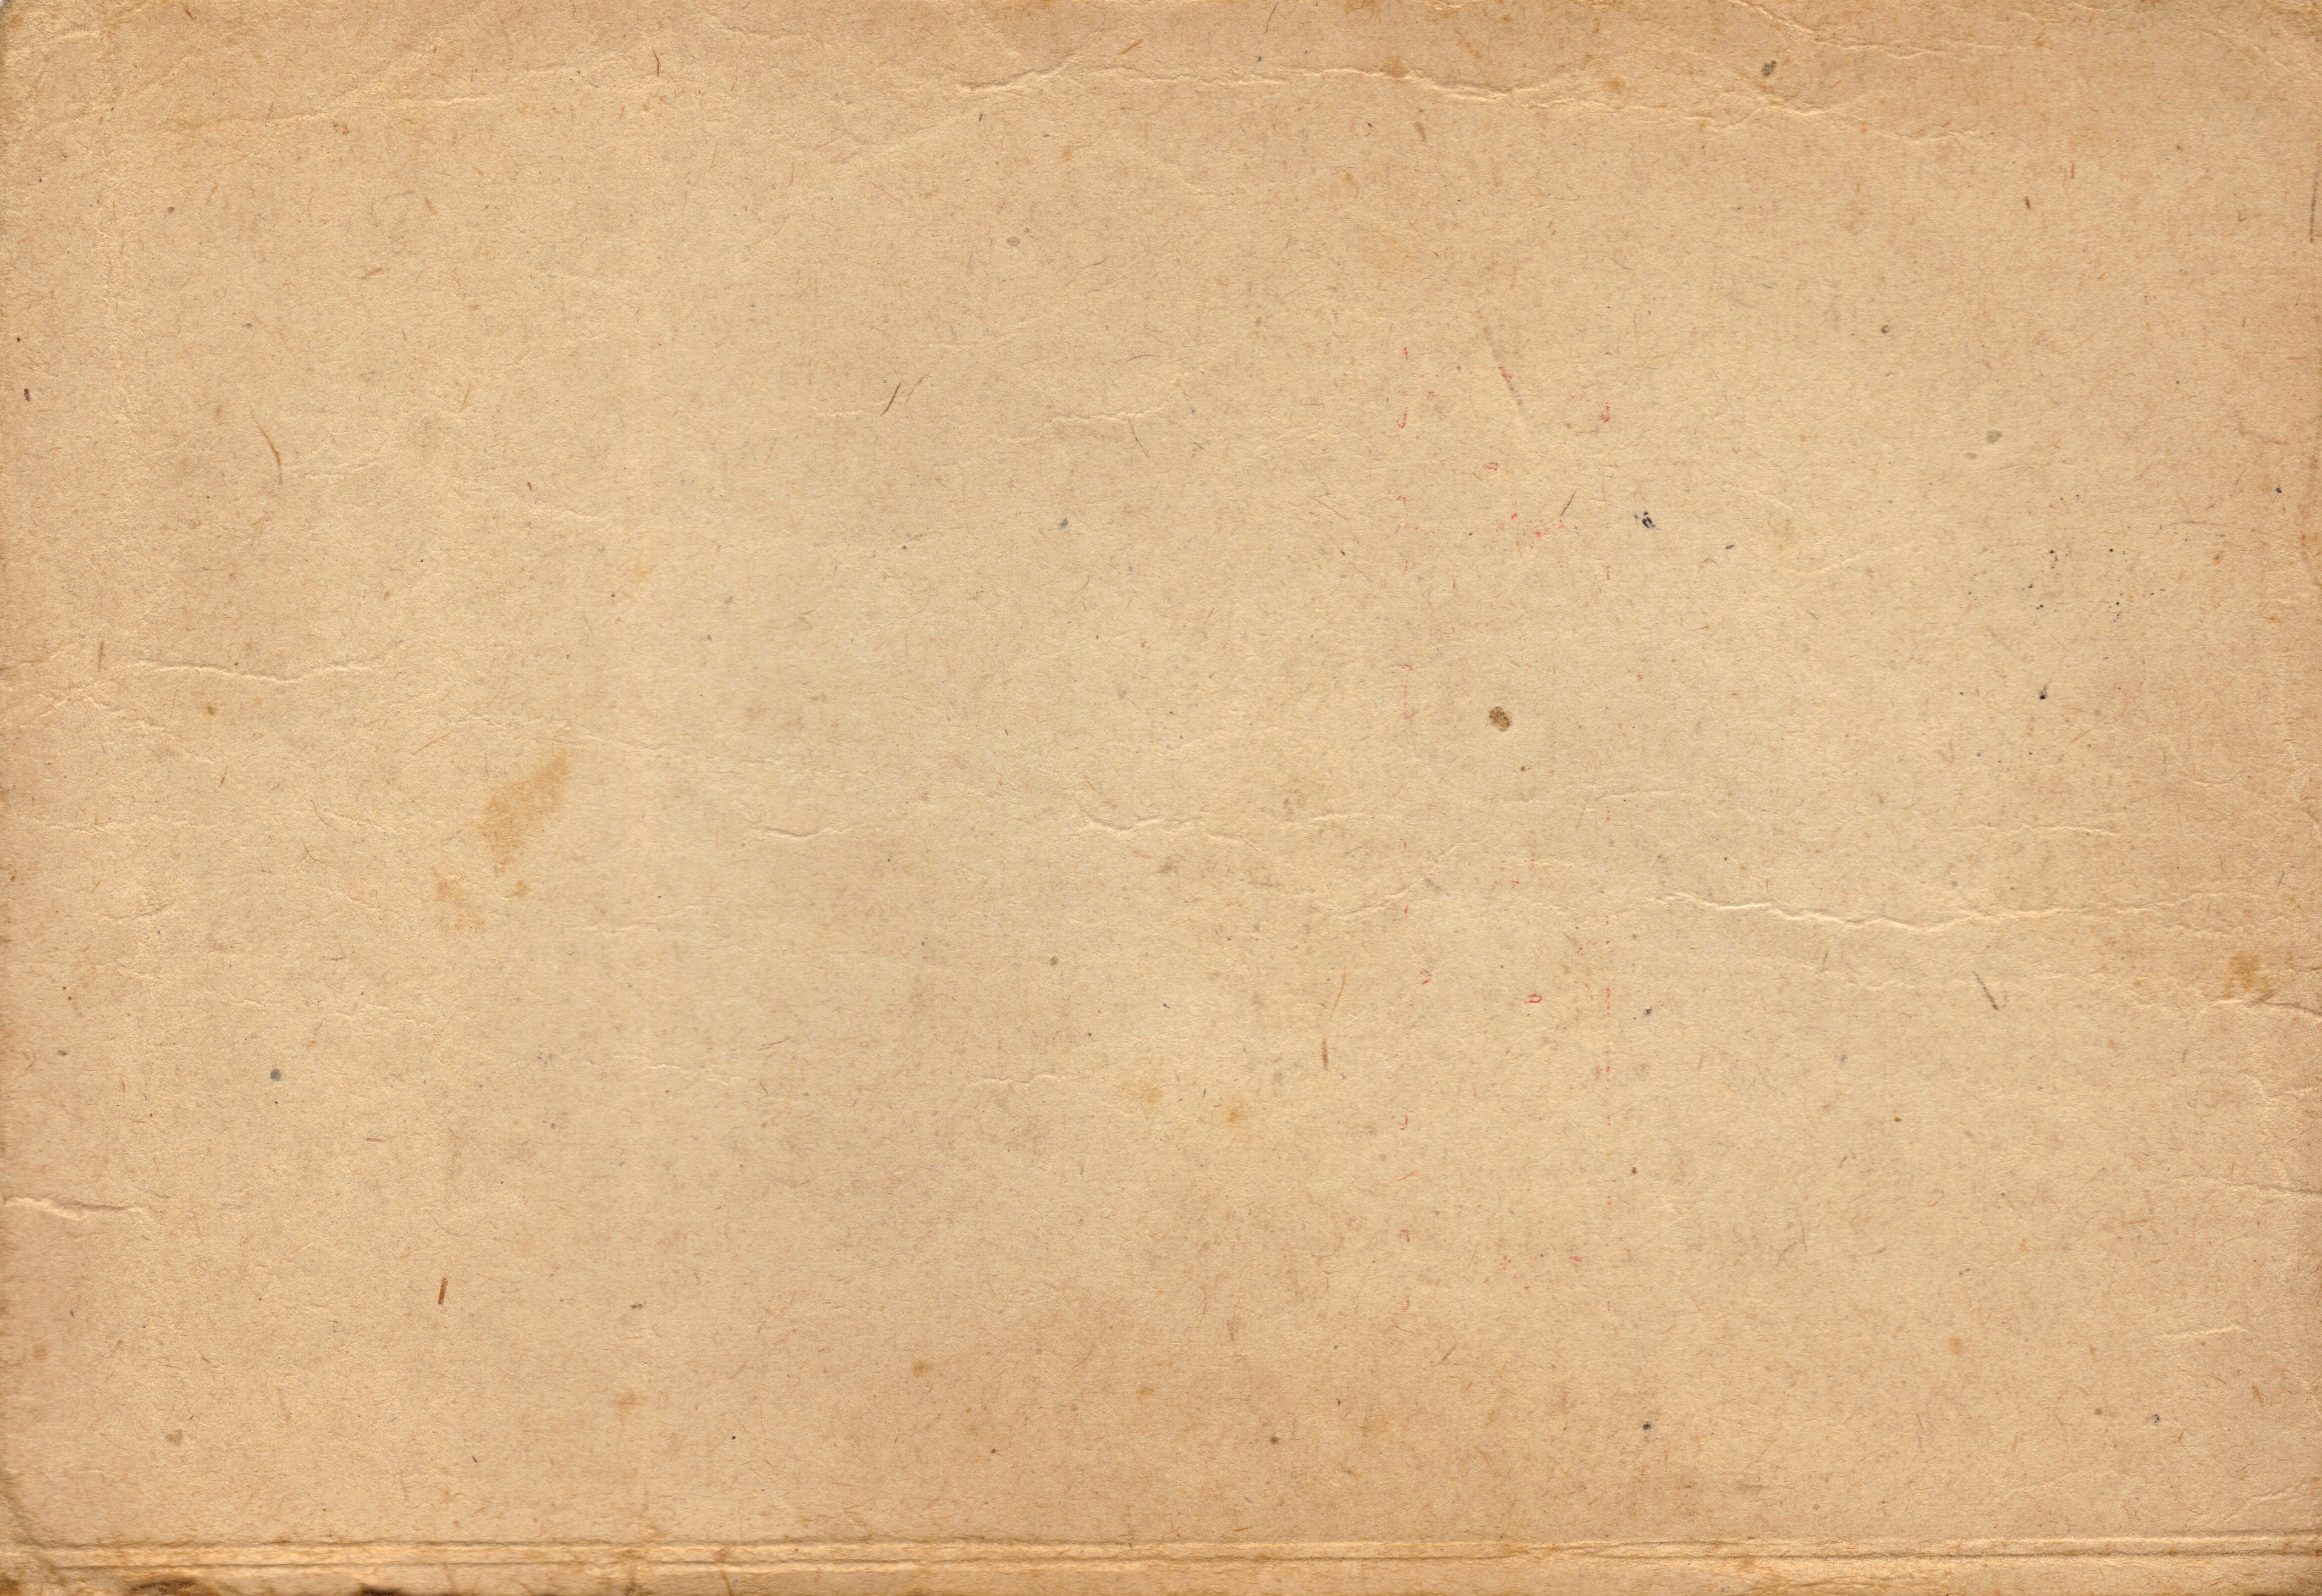 Old Paper Texture Free Unique 5 Simple Old Paper Texture Jpg